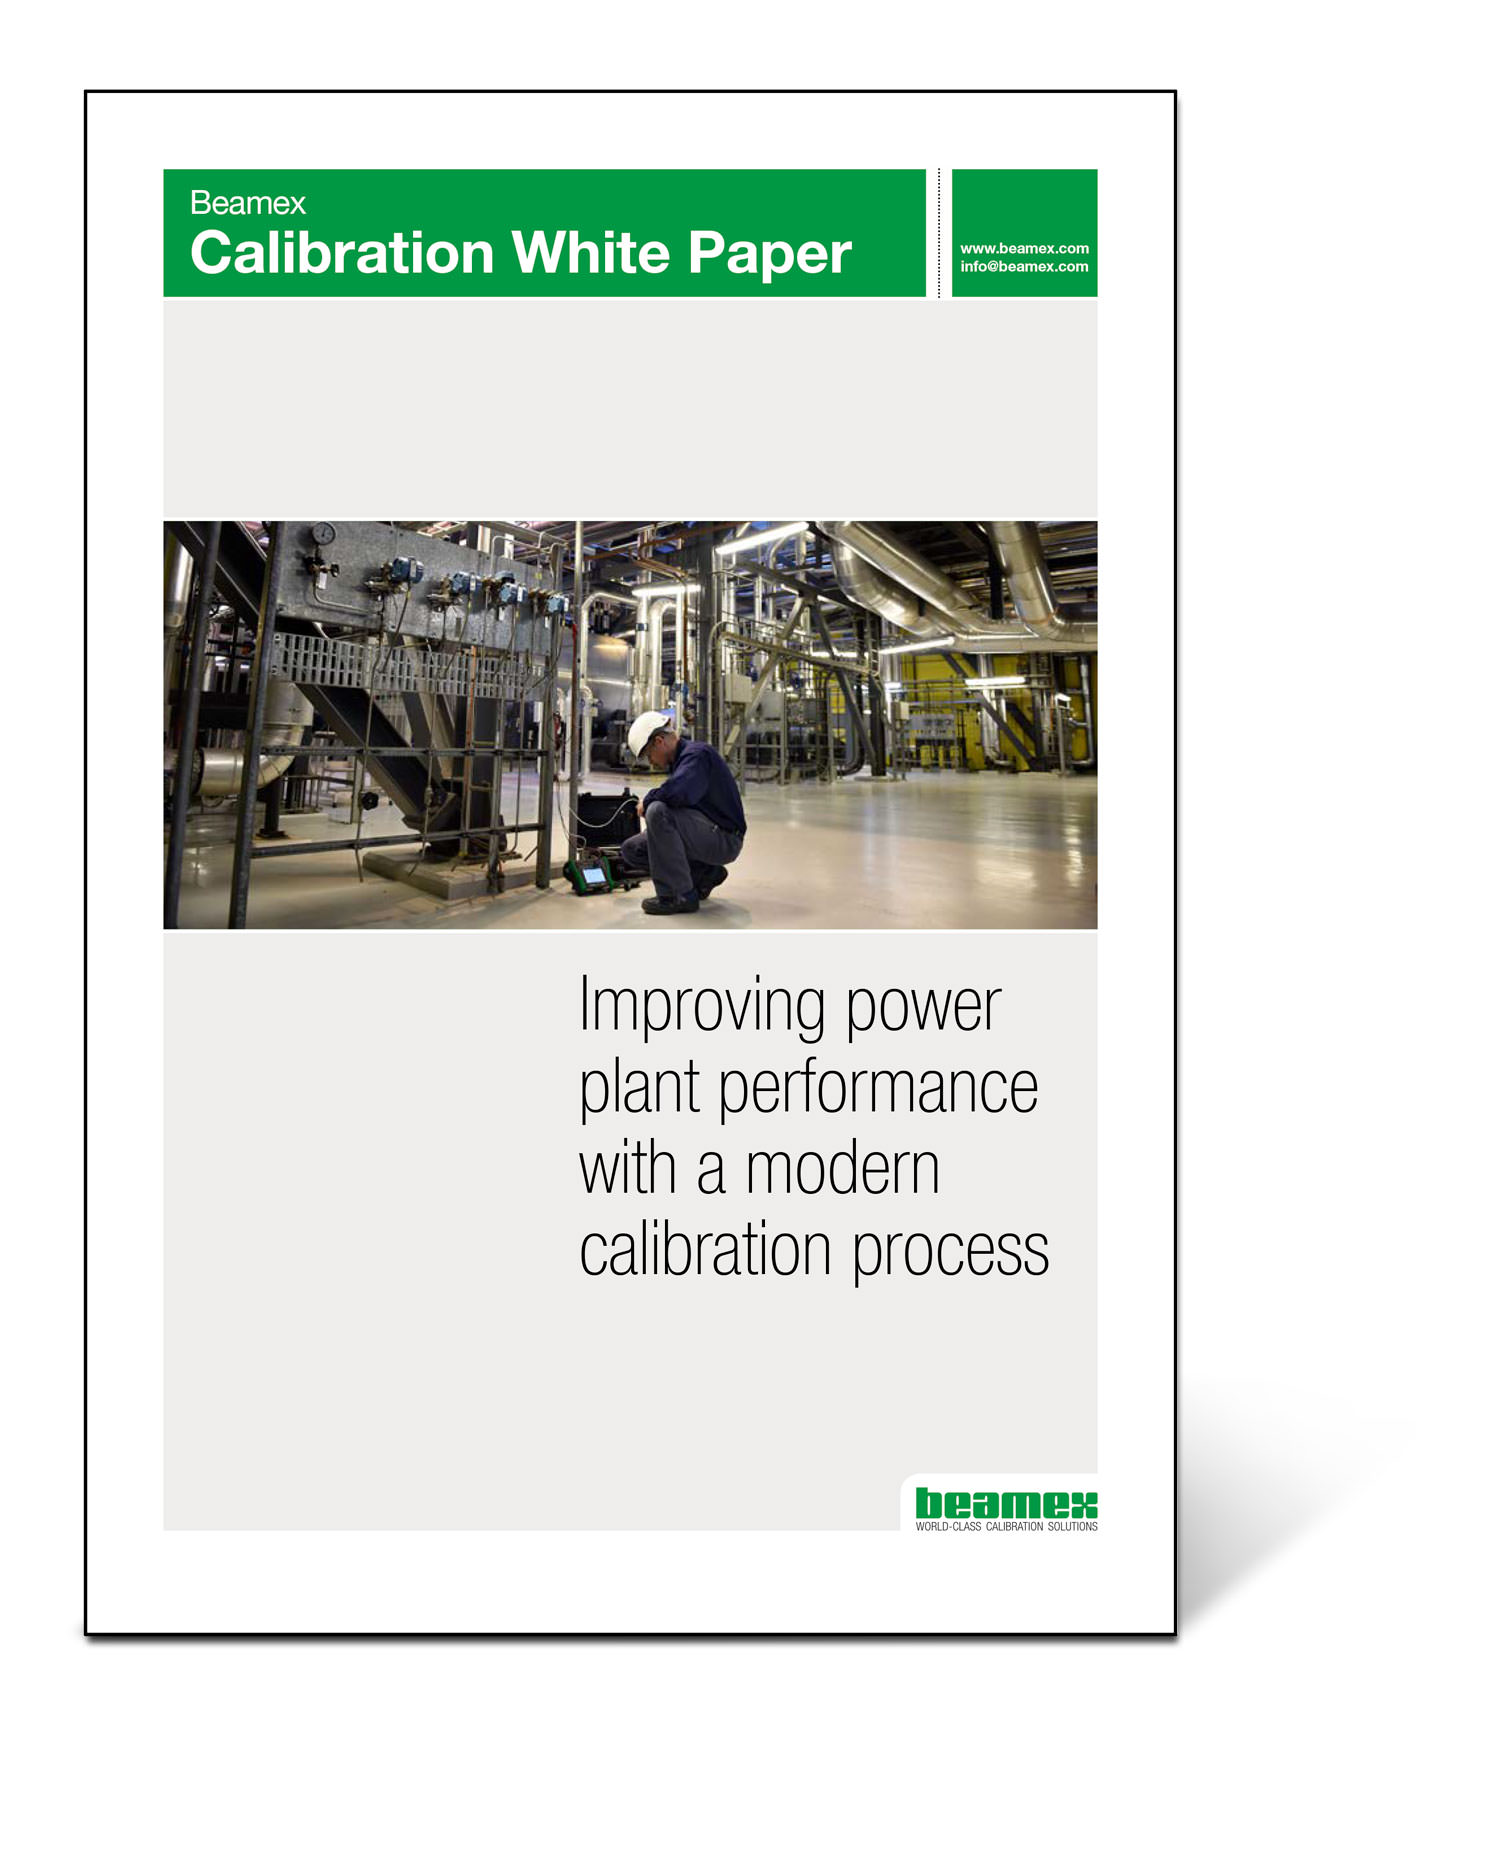 Improving power plant performance with a modern calibration process, Beamex white paper